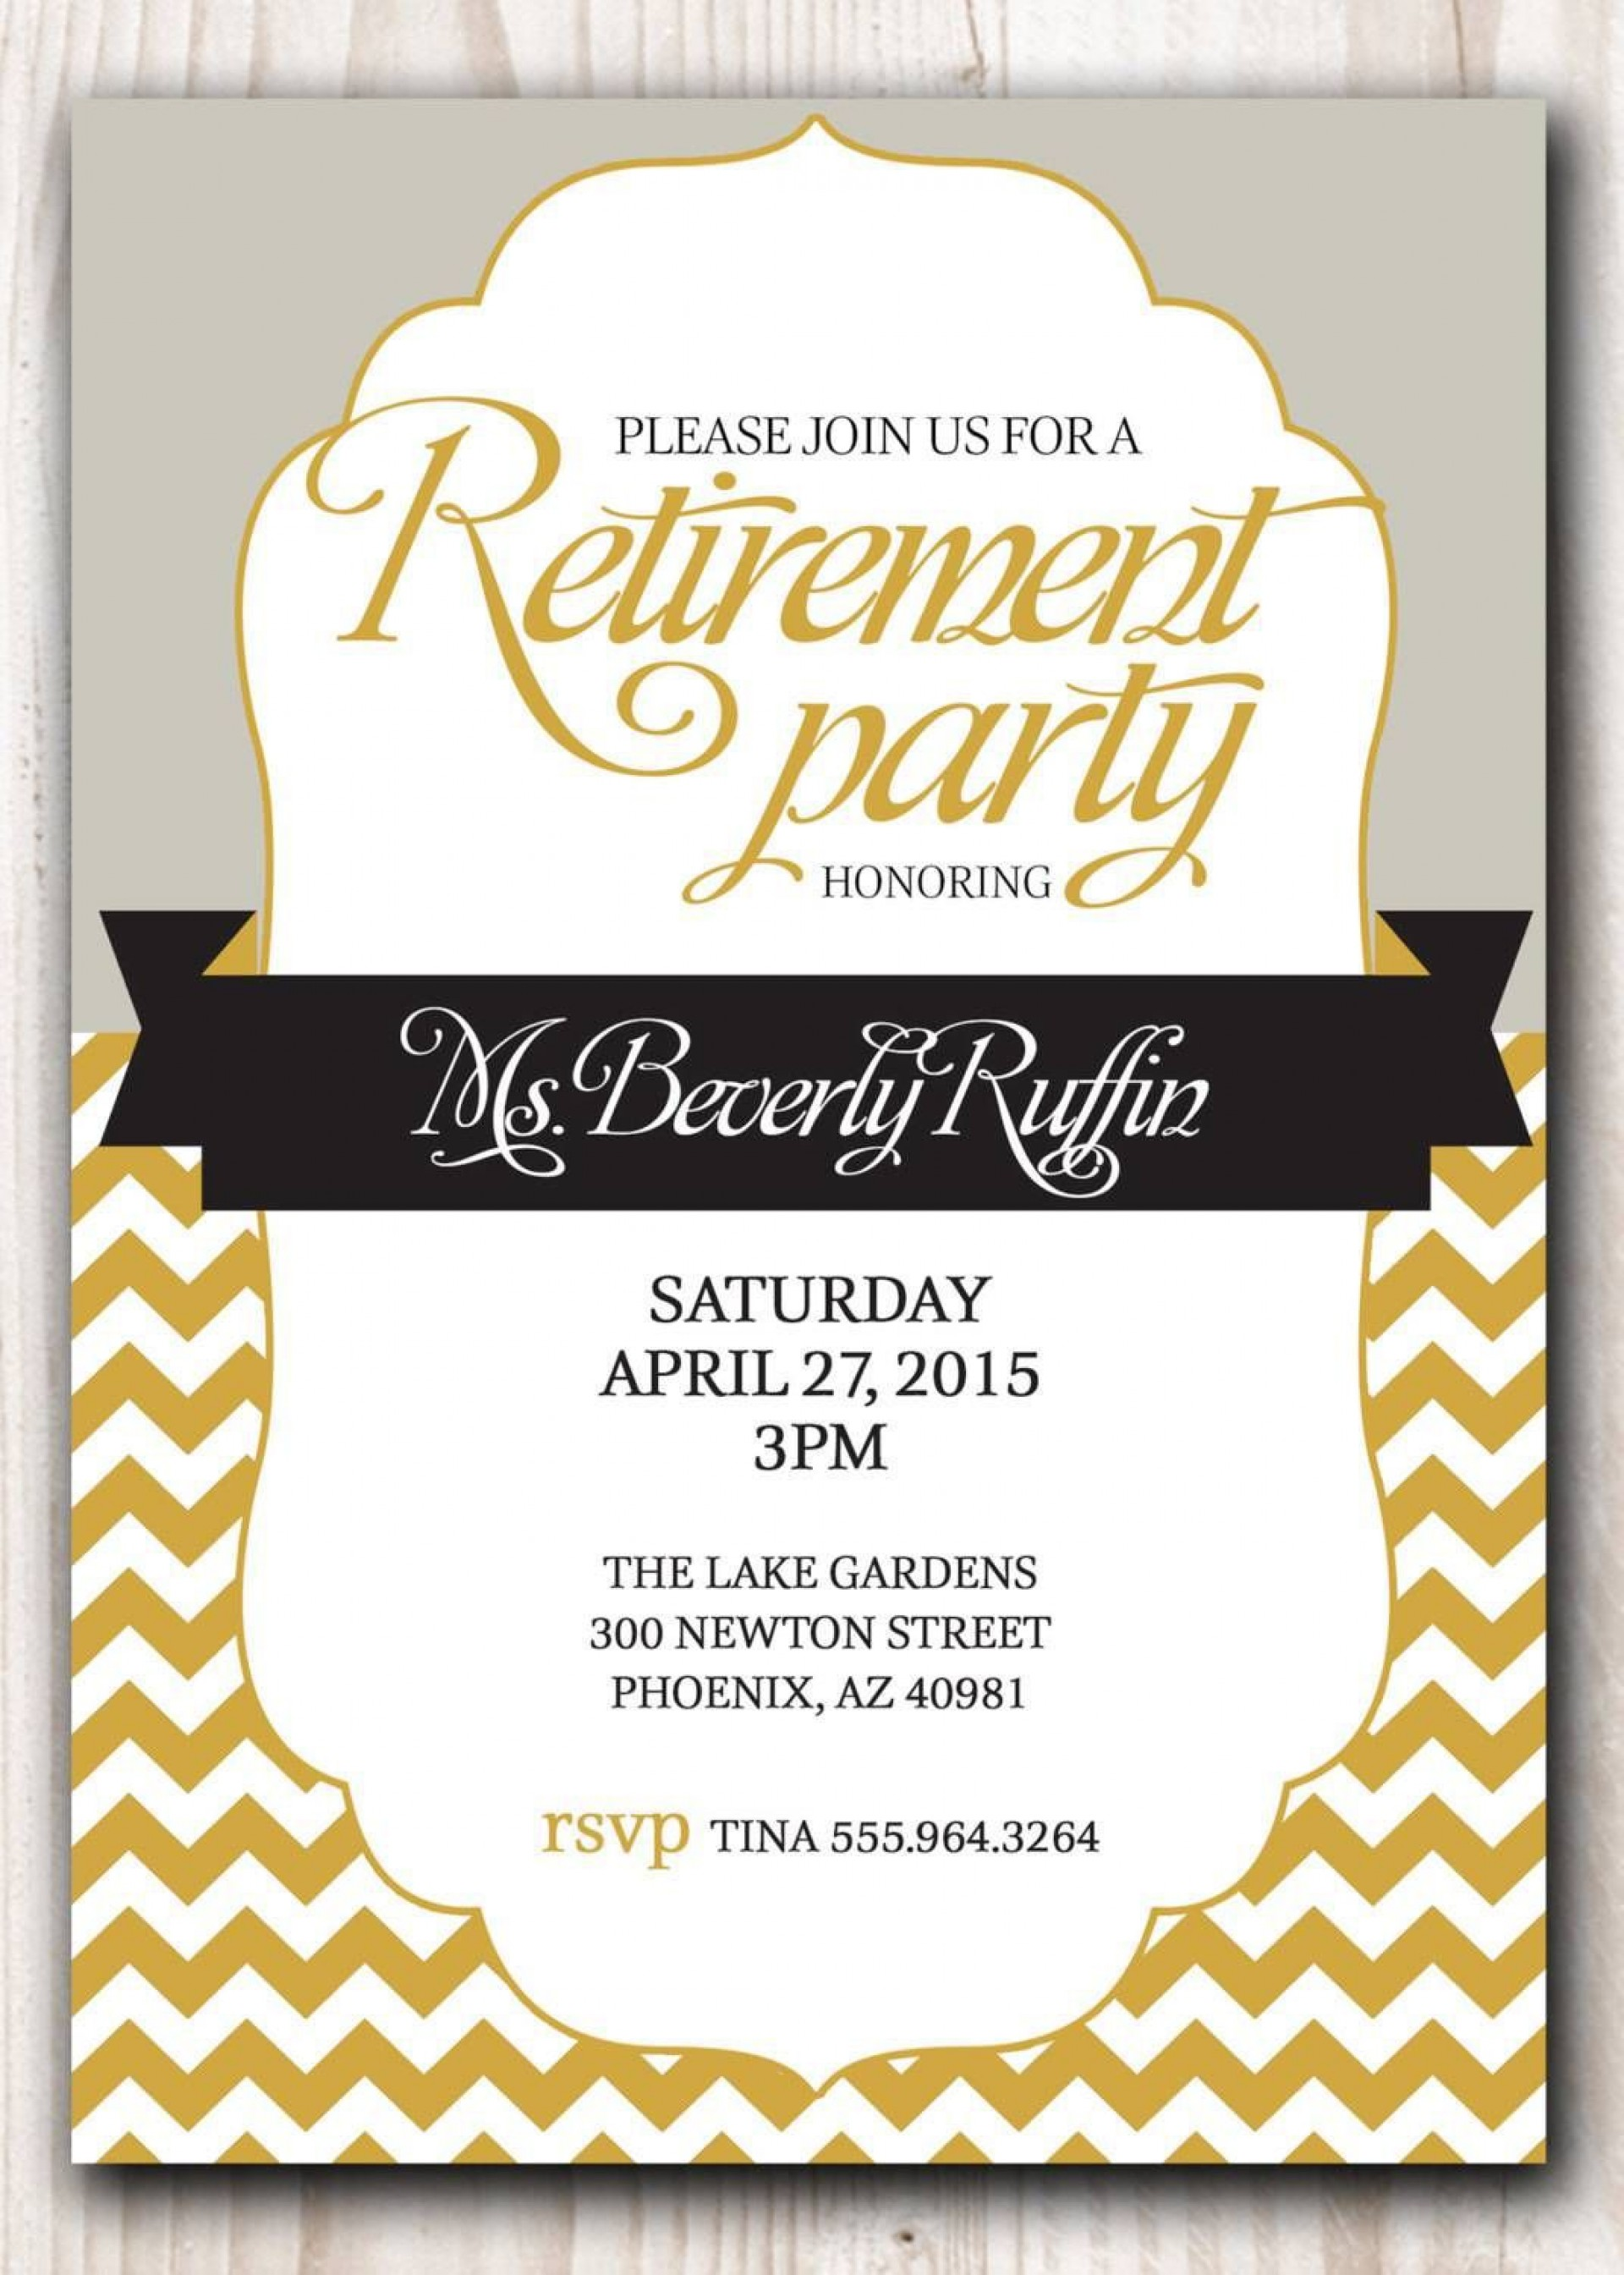 004 Stupendou Free Retirement Invitation Template Example  Templates Microsoft Word Party Flyer1920